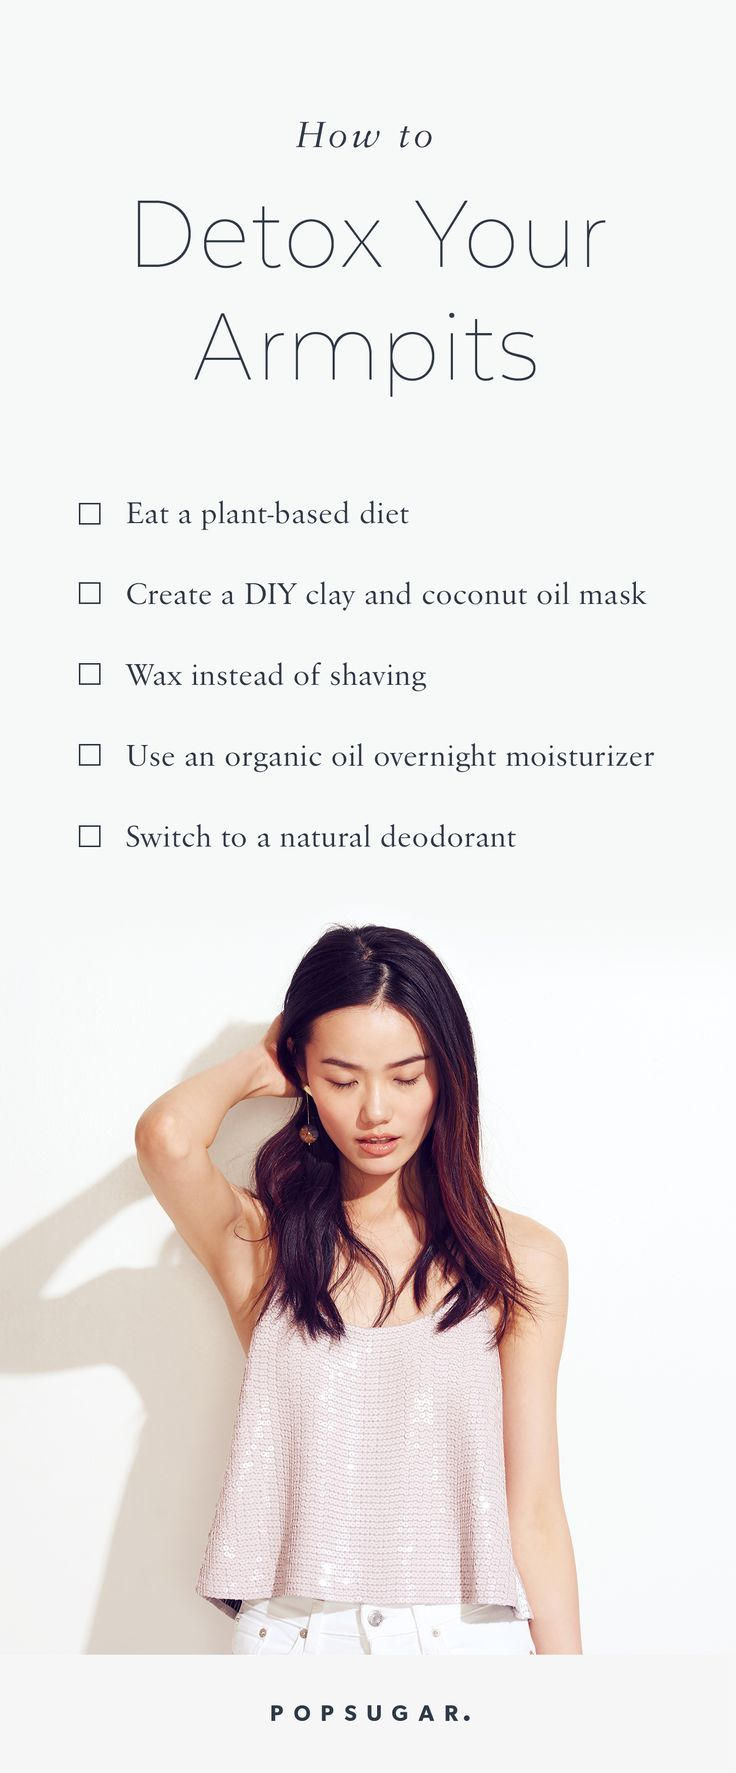 Tips to sensational summer skin - Follow These Steps To Detox Your Armpits